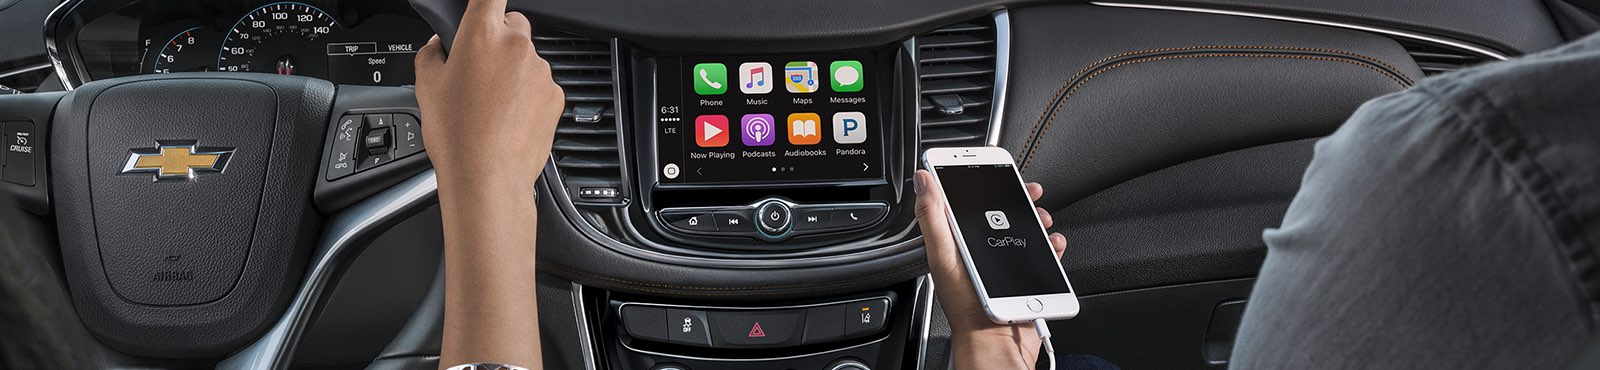 Global Connected Customer Experience & OnStar